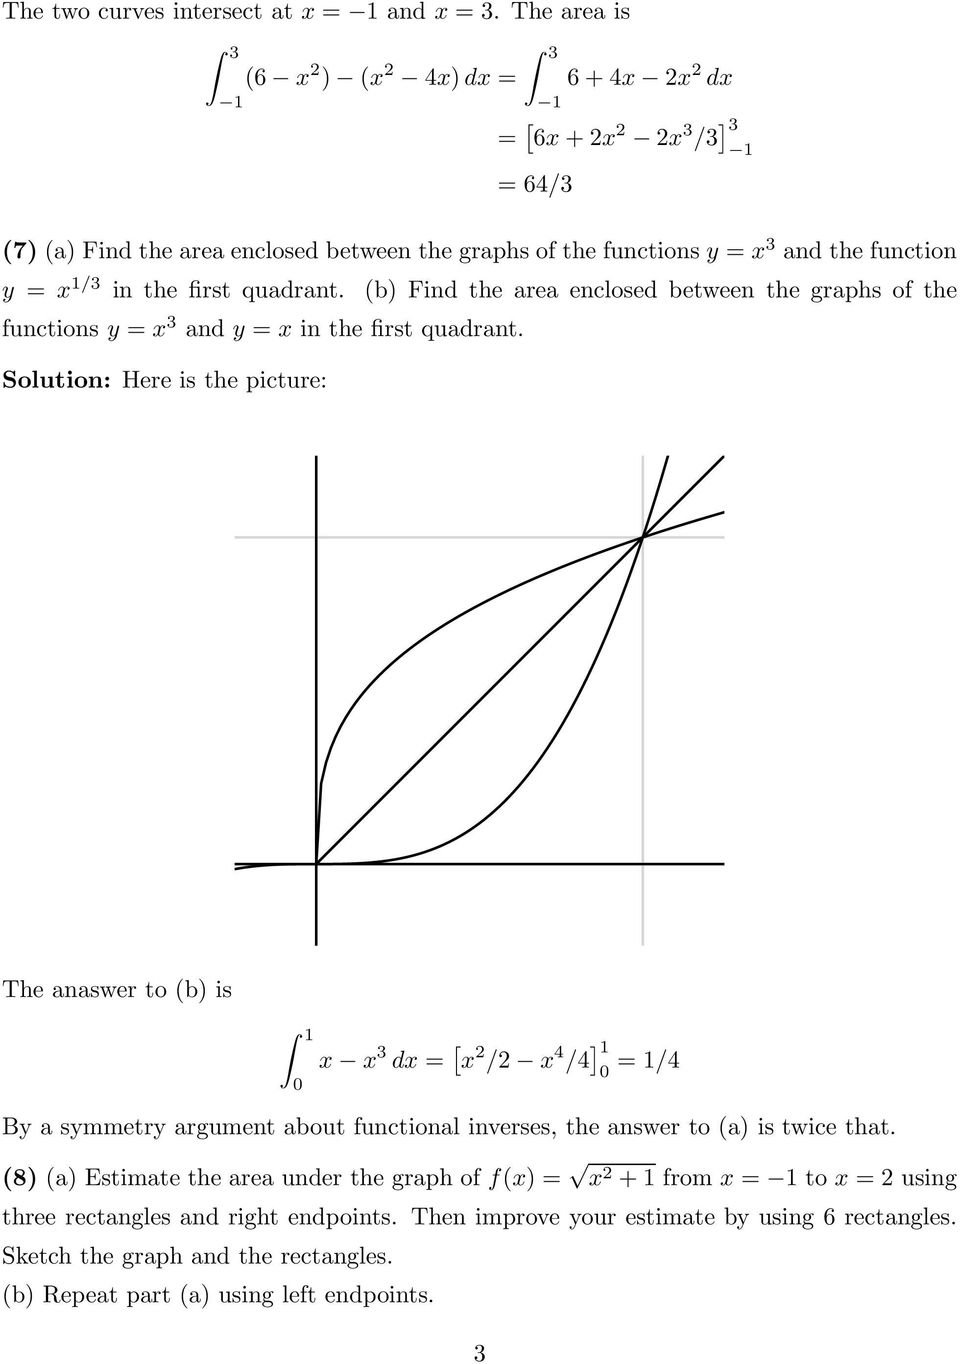 quadrant. (b) Find the area enclosed between the graphs of the functions y = x 3 and y = x in the first quadrant.